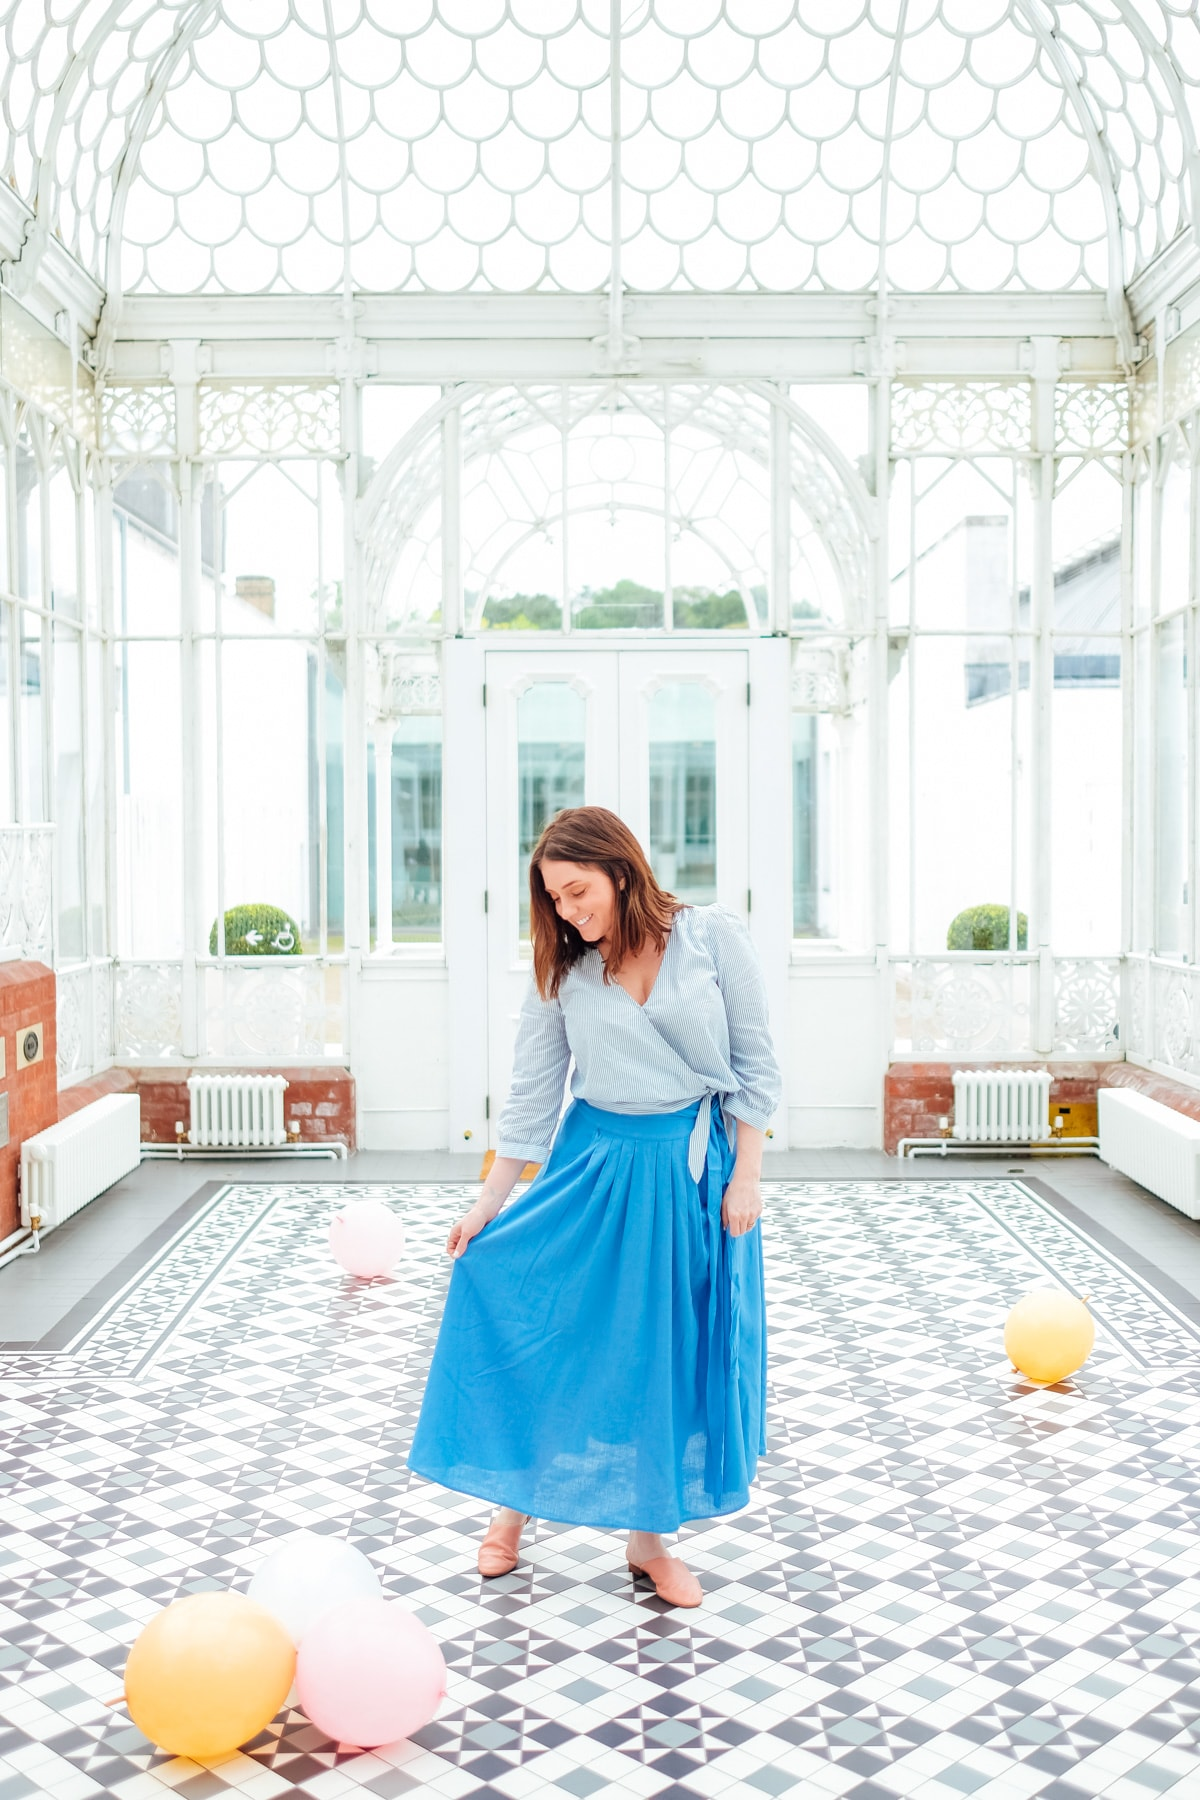 A classic skirt in Horniman Gardens London! Photos of Our British Isles Cruise with Family!   Part 1 # travel #familytravel #cruise #decor #design #britishisles